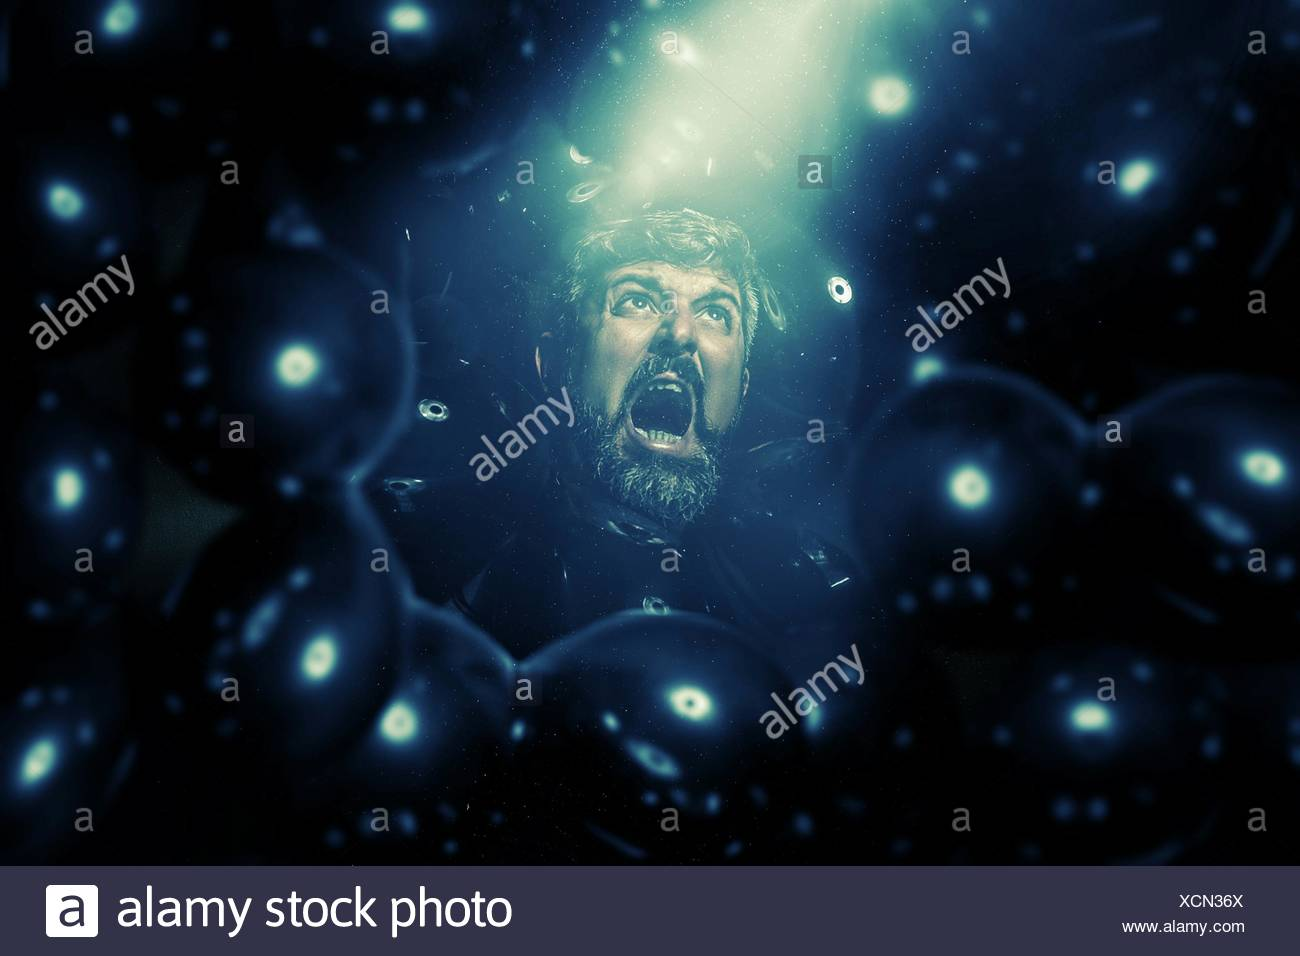 Bizarre Shot Of Man Screaming Out - Stock Image